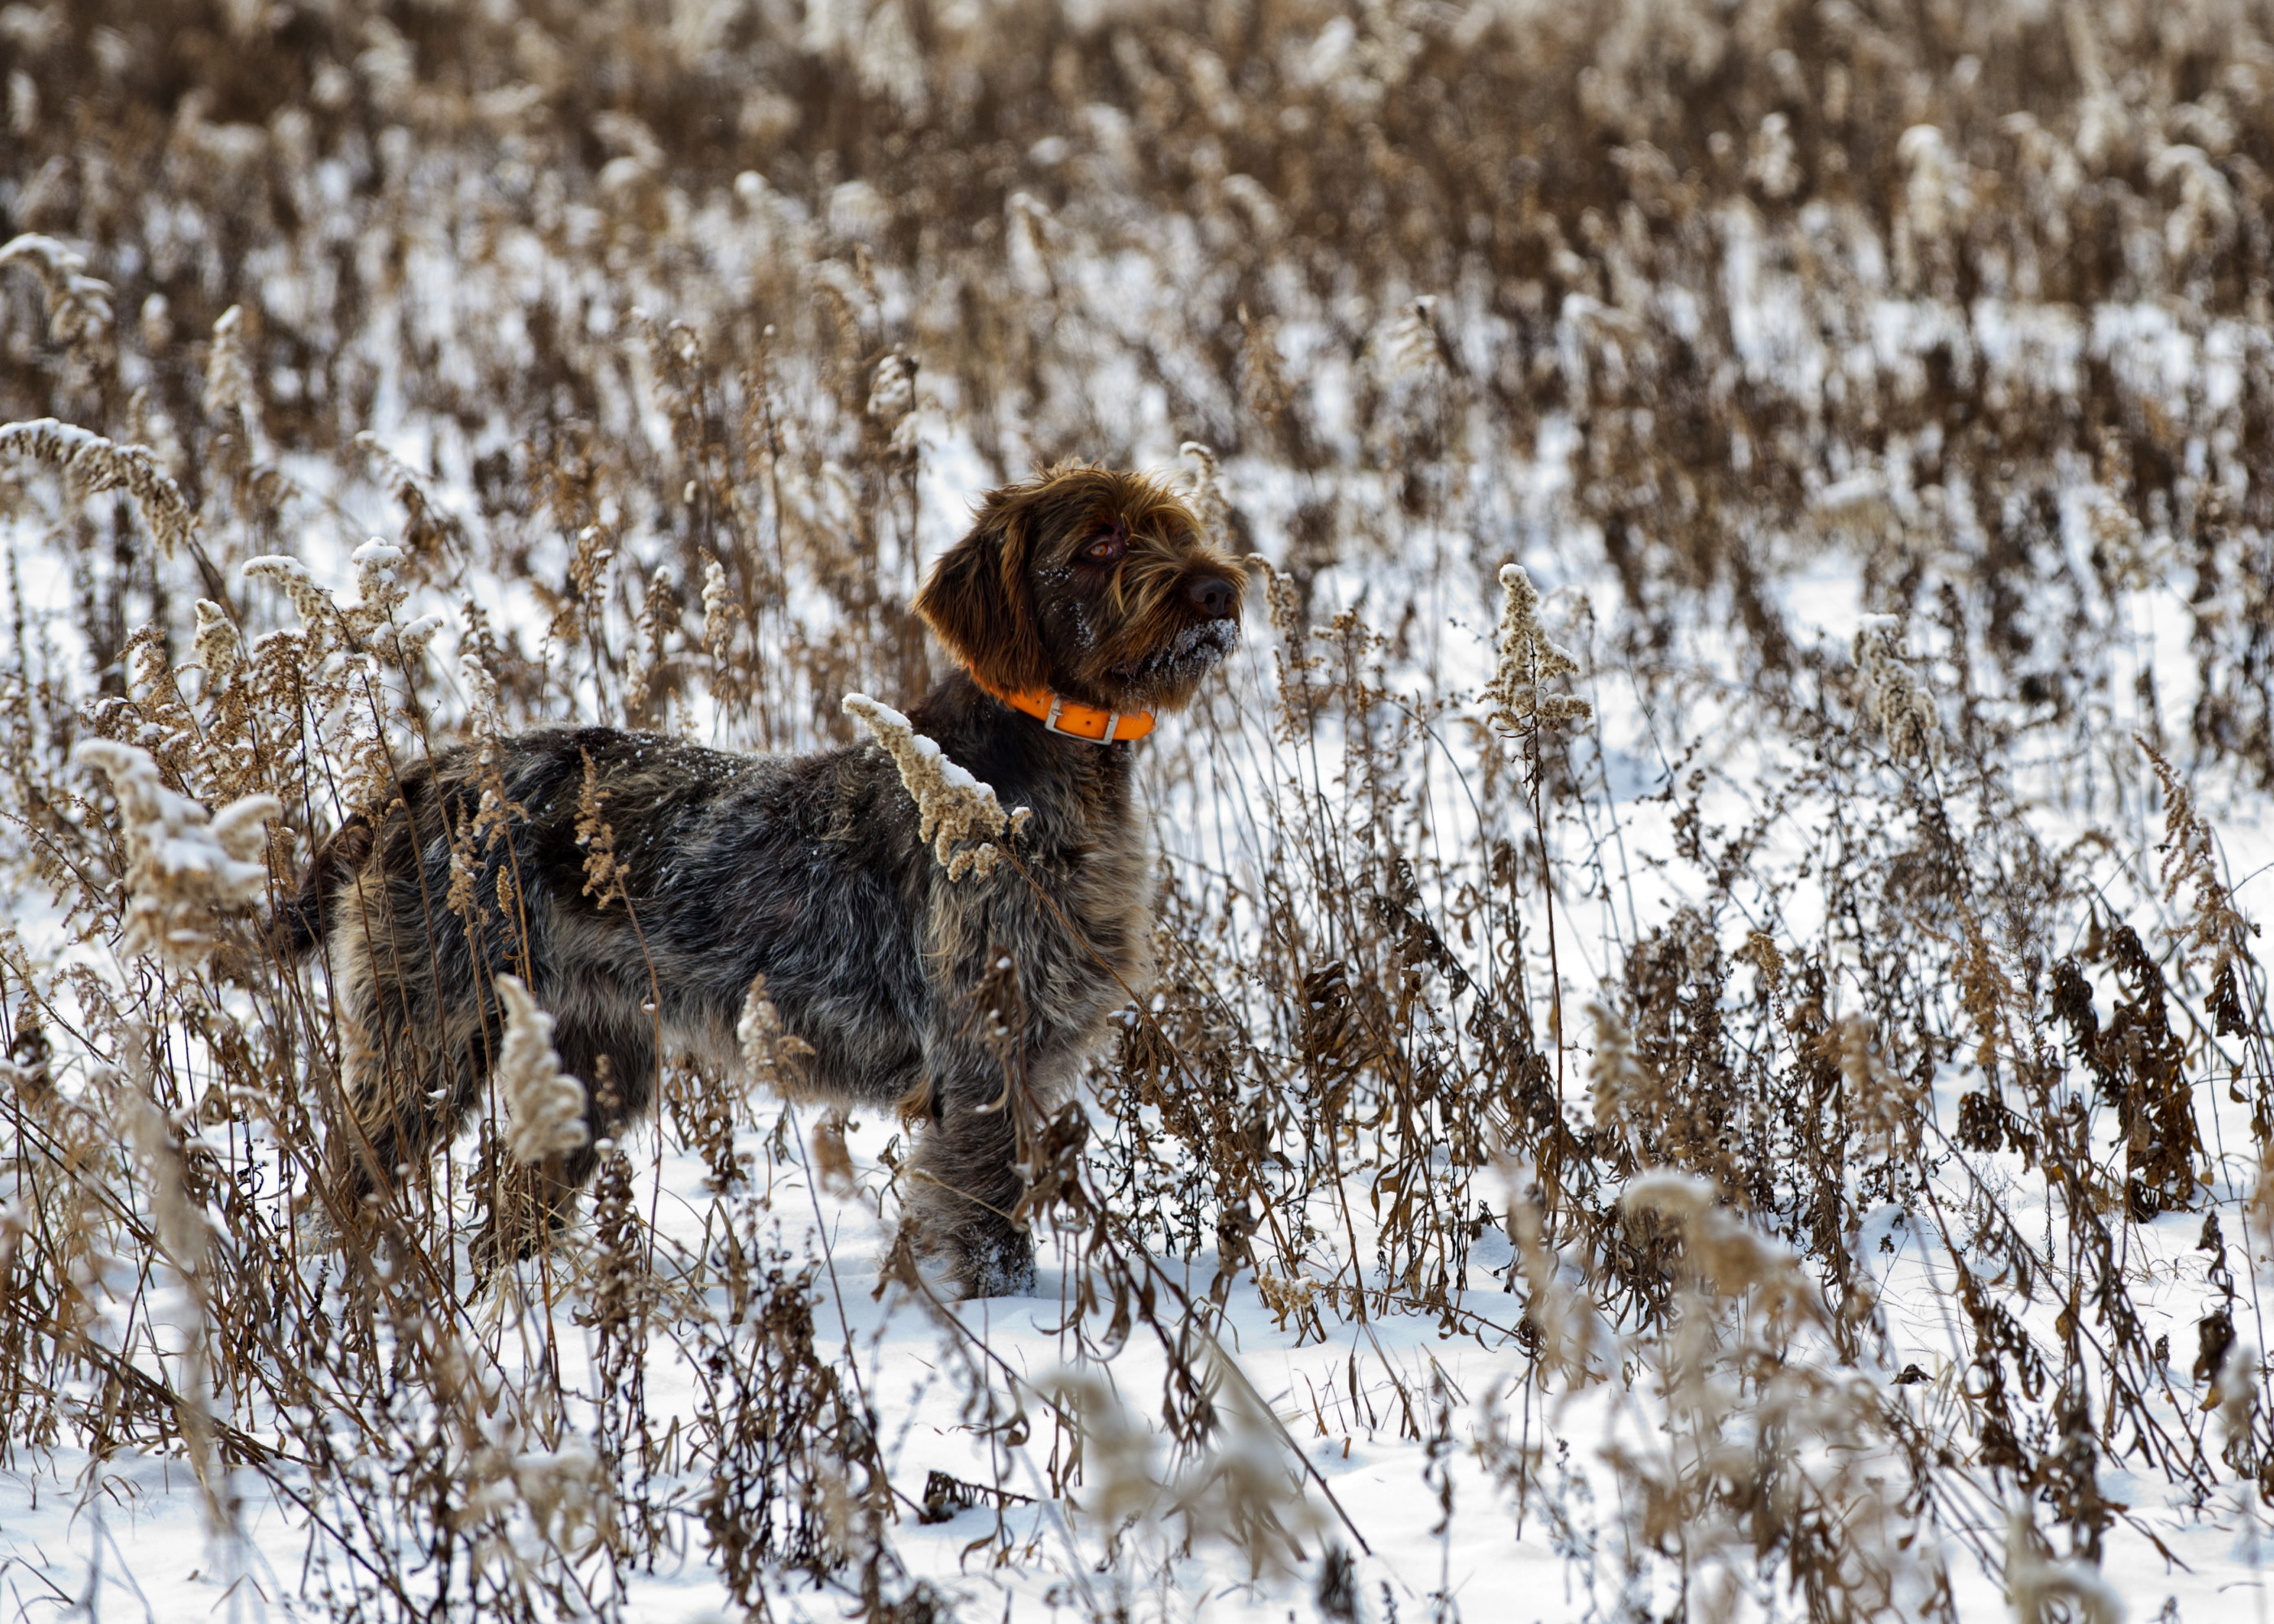 Winter Wirehaired Pointing Griffon dog wallpaper